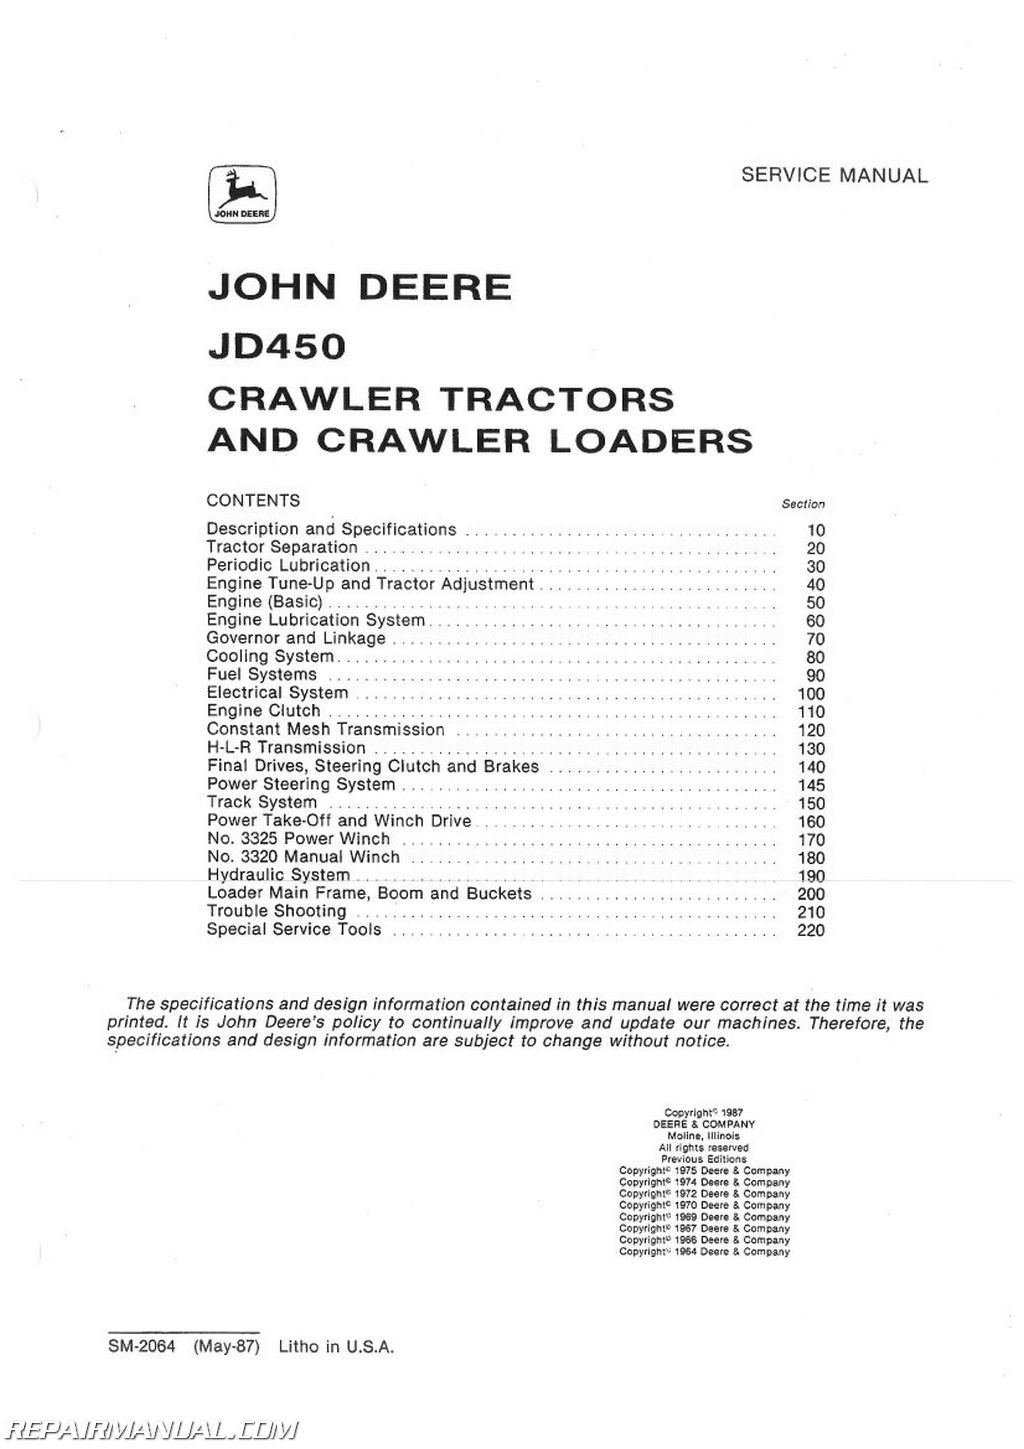 John Deere 140 Service Manual Best Deer Photos H3 Wiring Diagram 450 Crawler